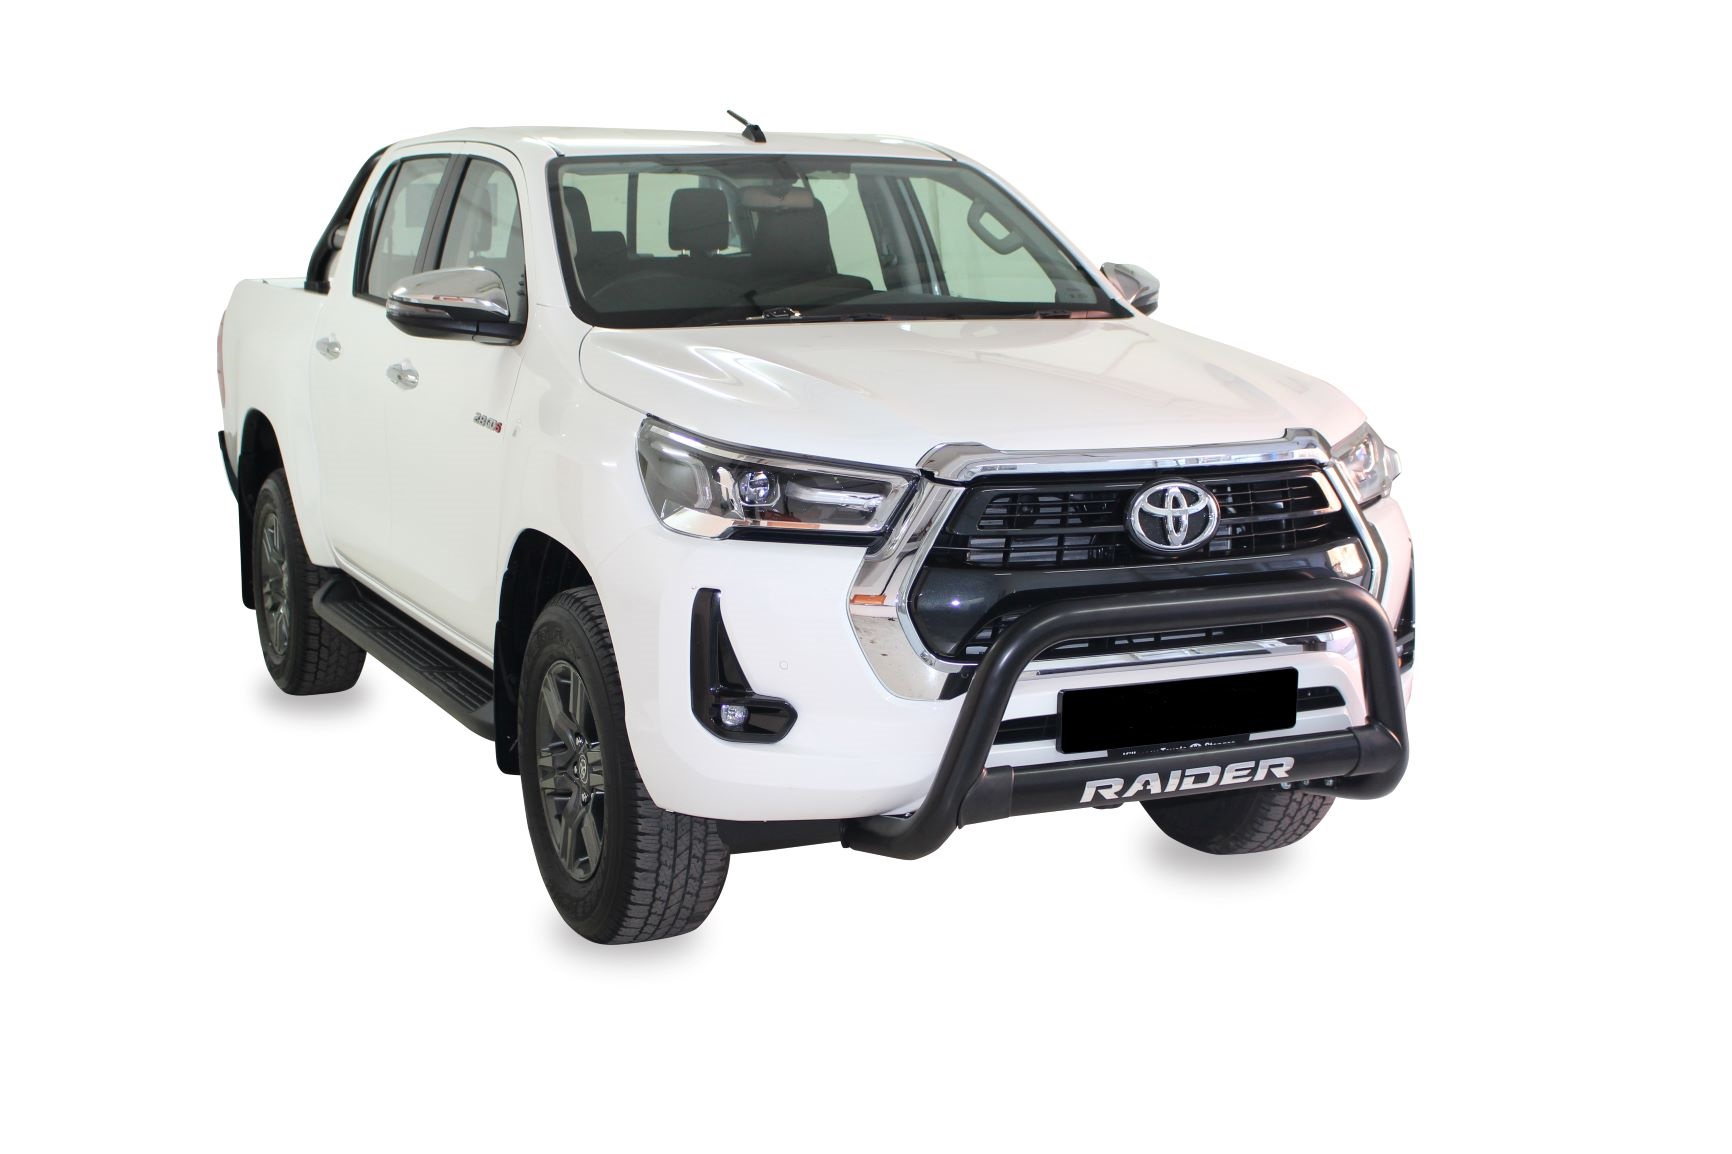 NEW HILUX FACELIFT RANGE (Fits GD6 Revo & New Facelift) Nudge Bar Stainless Steel